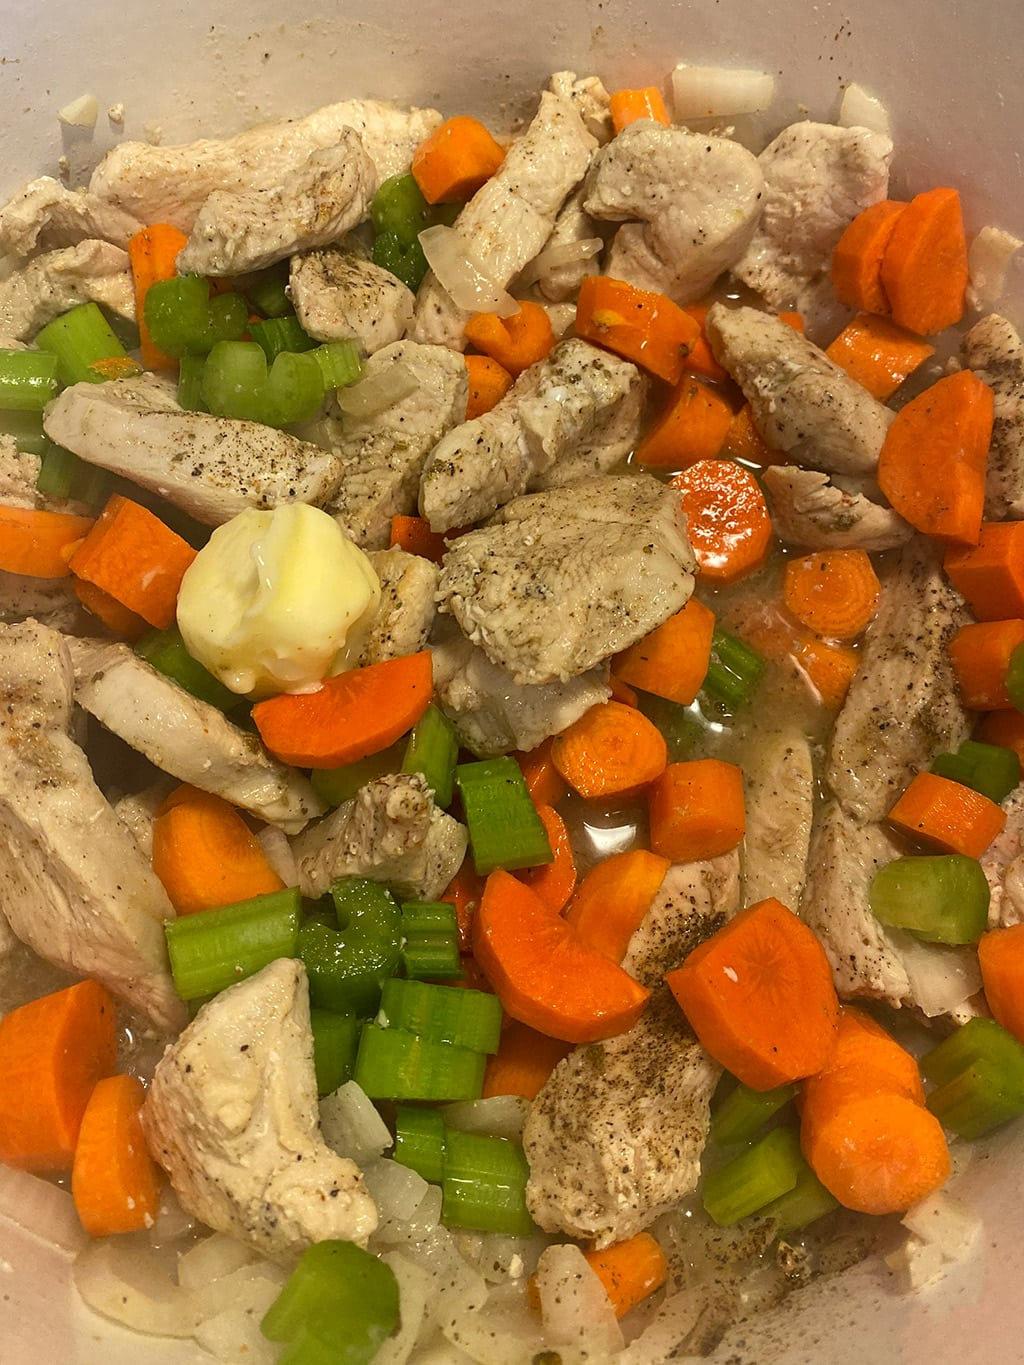 Add vegetables to cooked chicken.